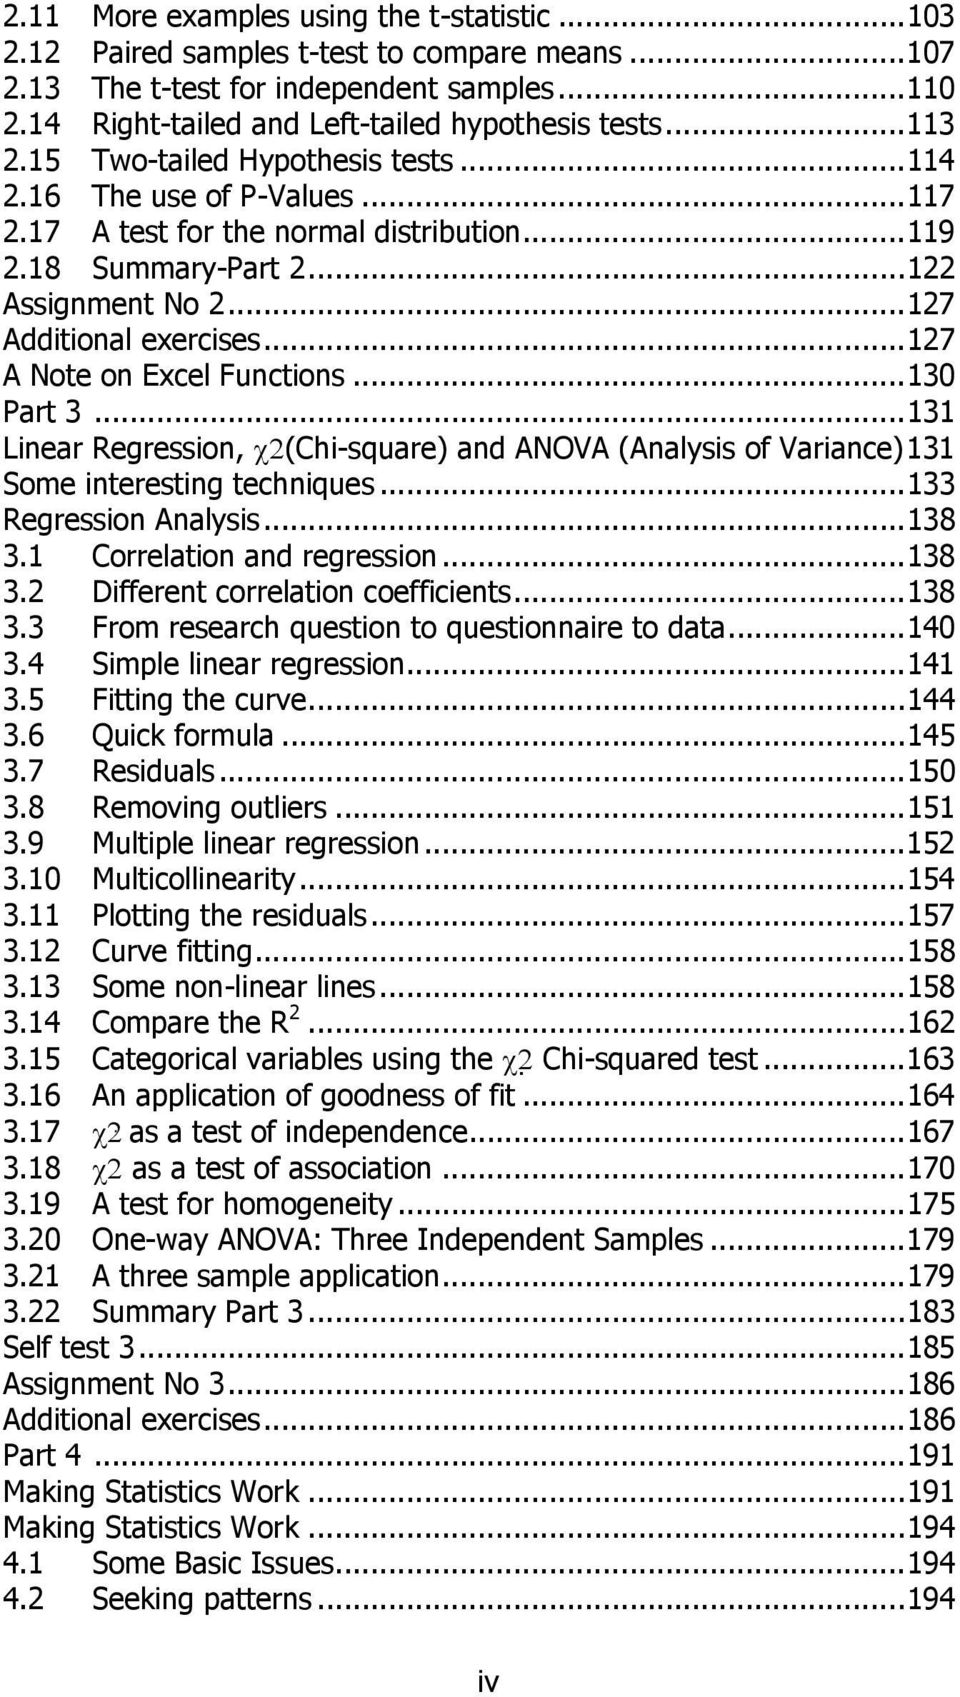 .. 127 A Note on Excel Functions... 130 Part 3... 131 Linear Regression, χ2(chi-square) and ANOVA (Analysis of Variance) 131 Some interesting techniques... 133 Regression Analysis... 138 3.